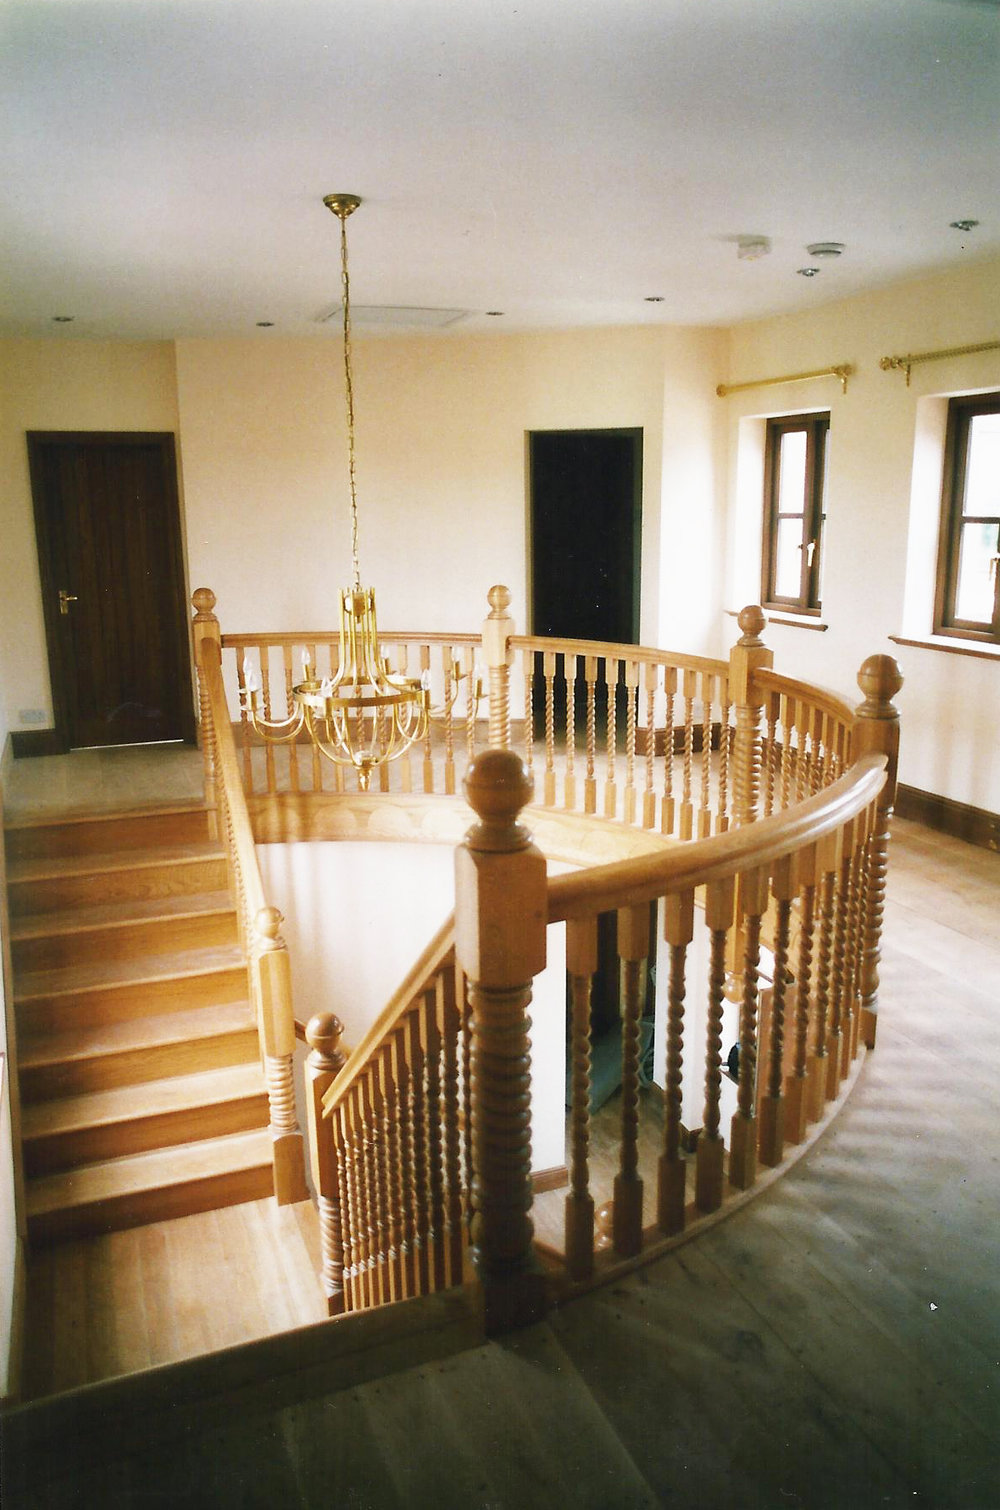 Staircase Image 1 - North End Farm - East Yorkshire Architects - Samuel Kendall Associates